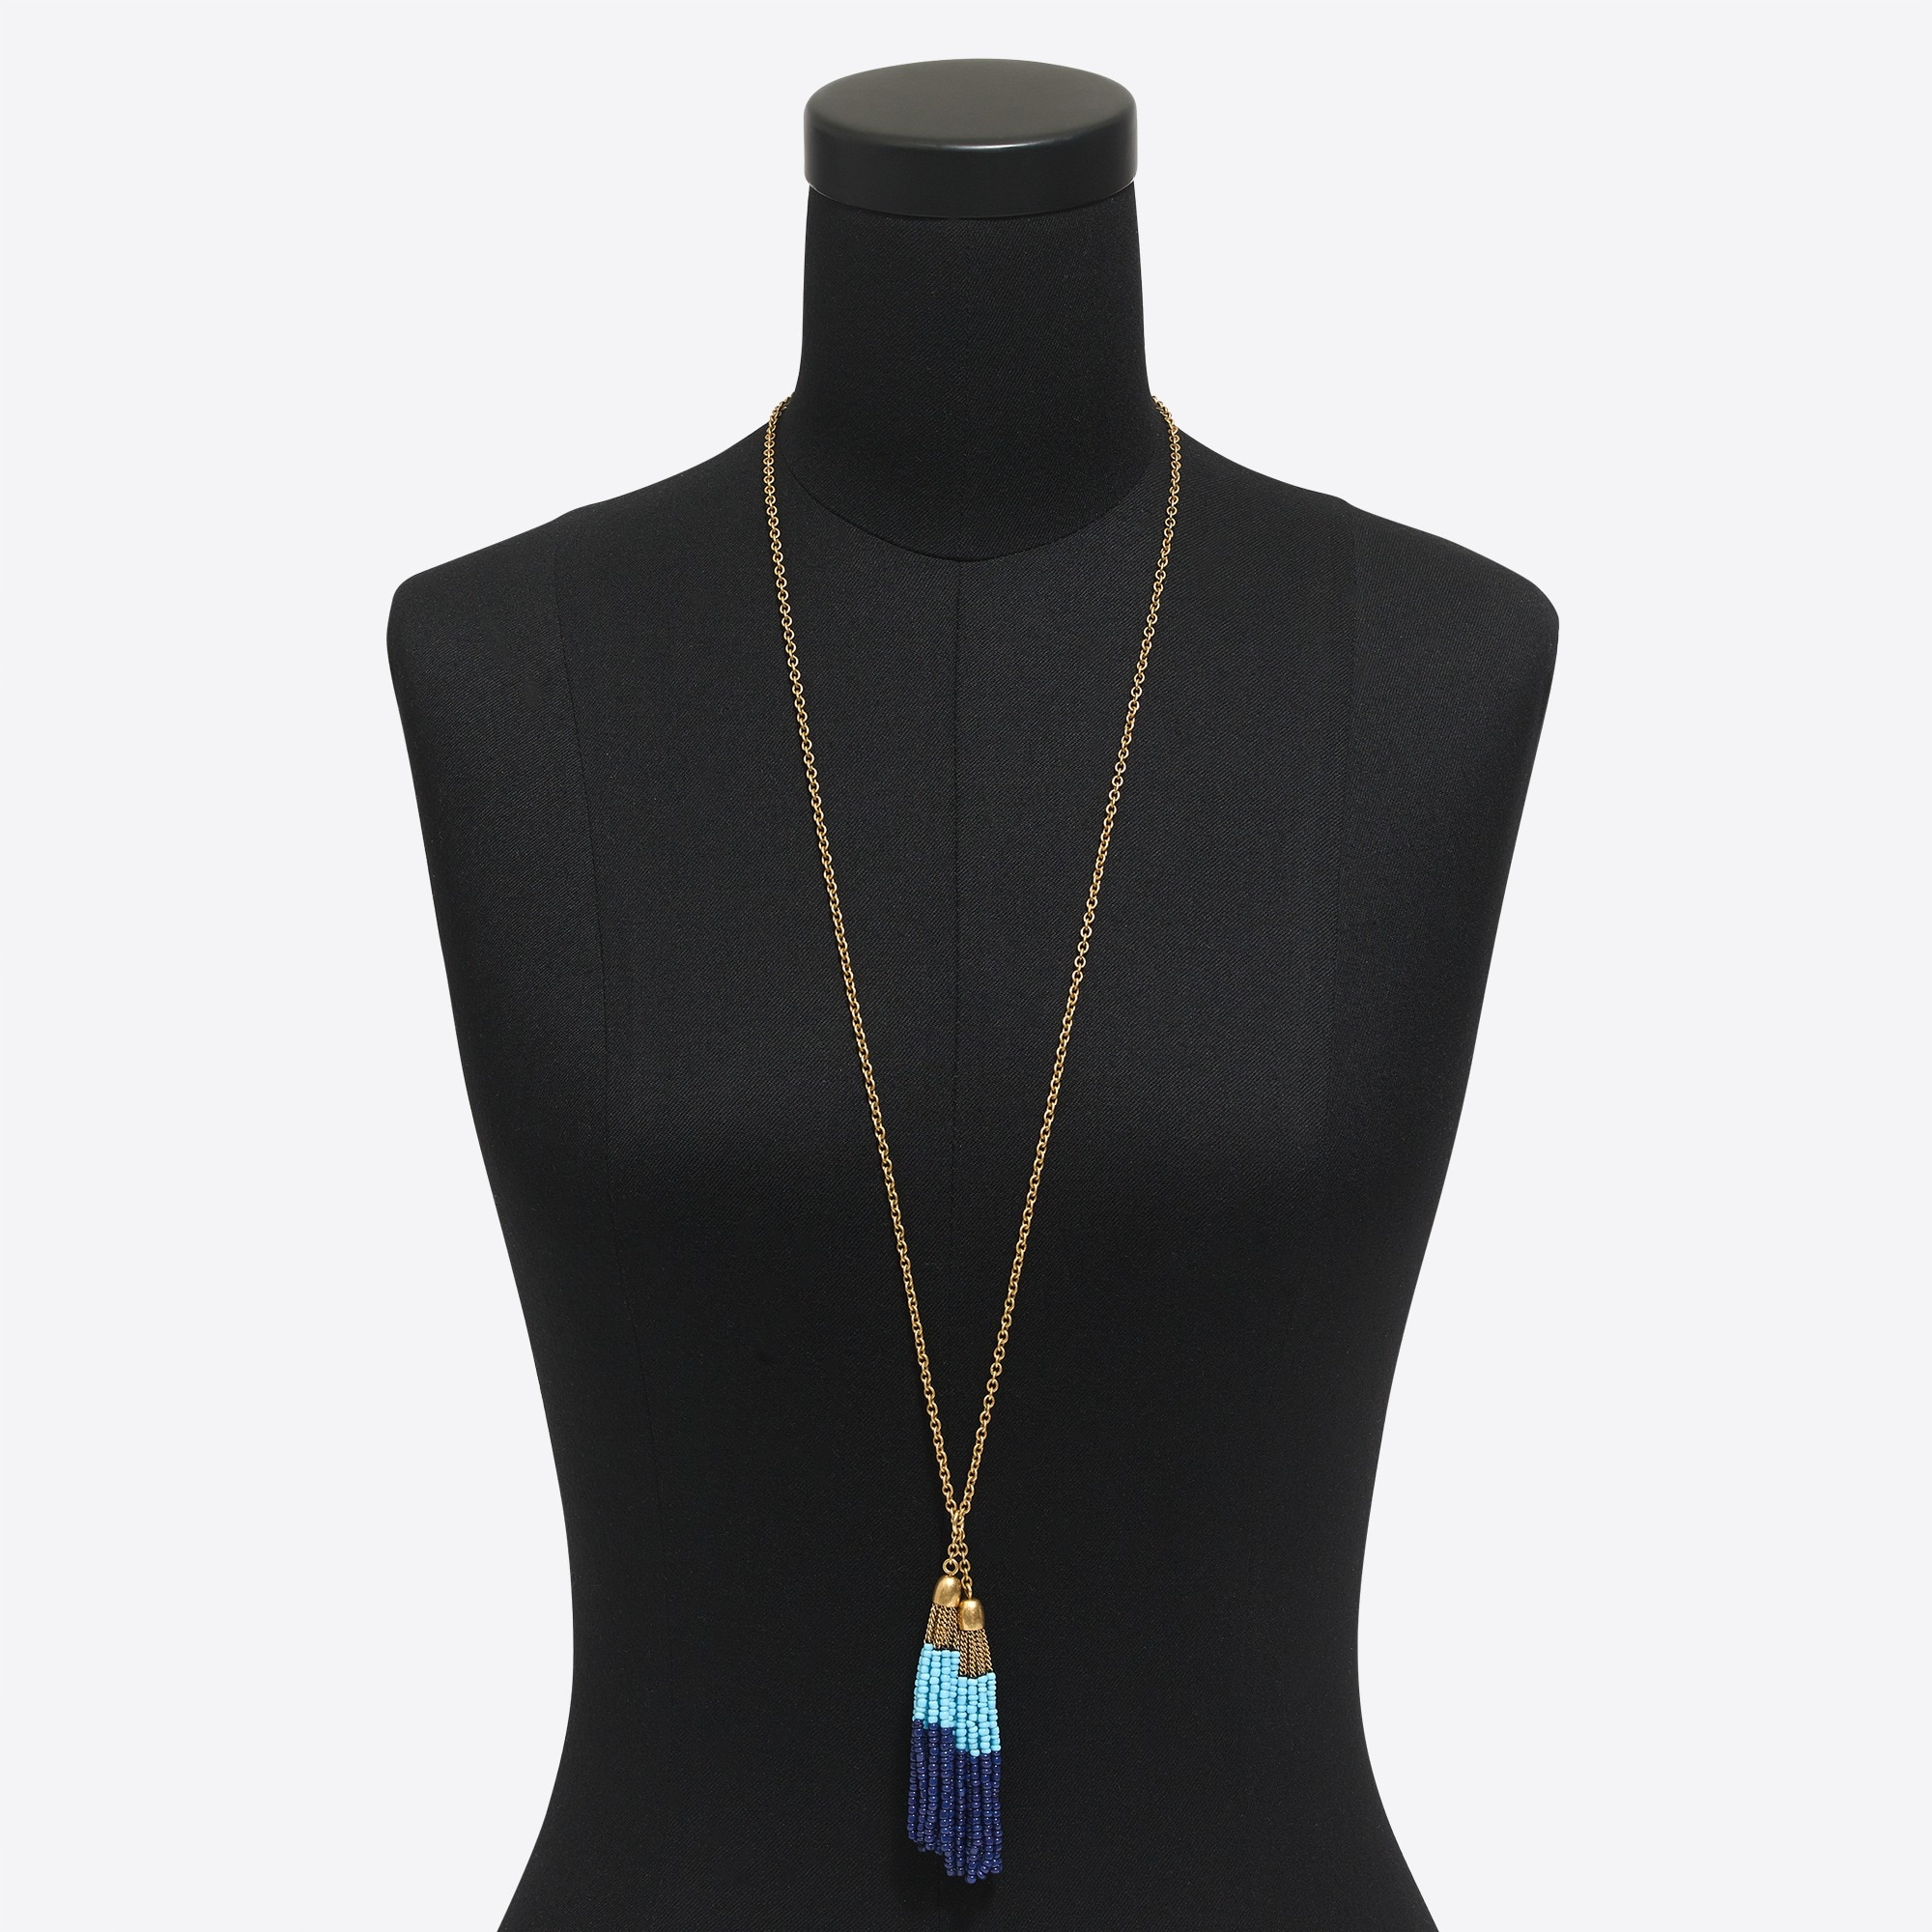 Image 2 for Double tassel pendant necklace